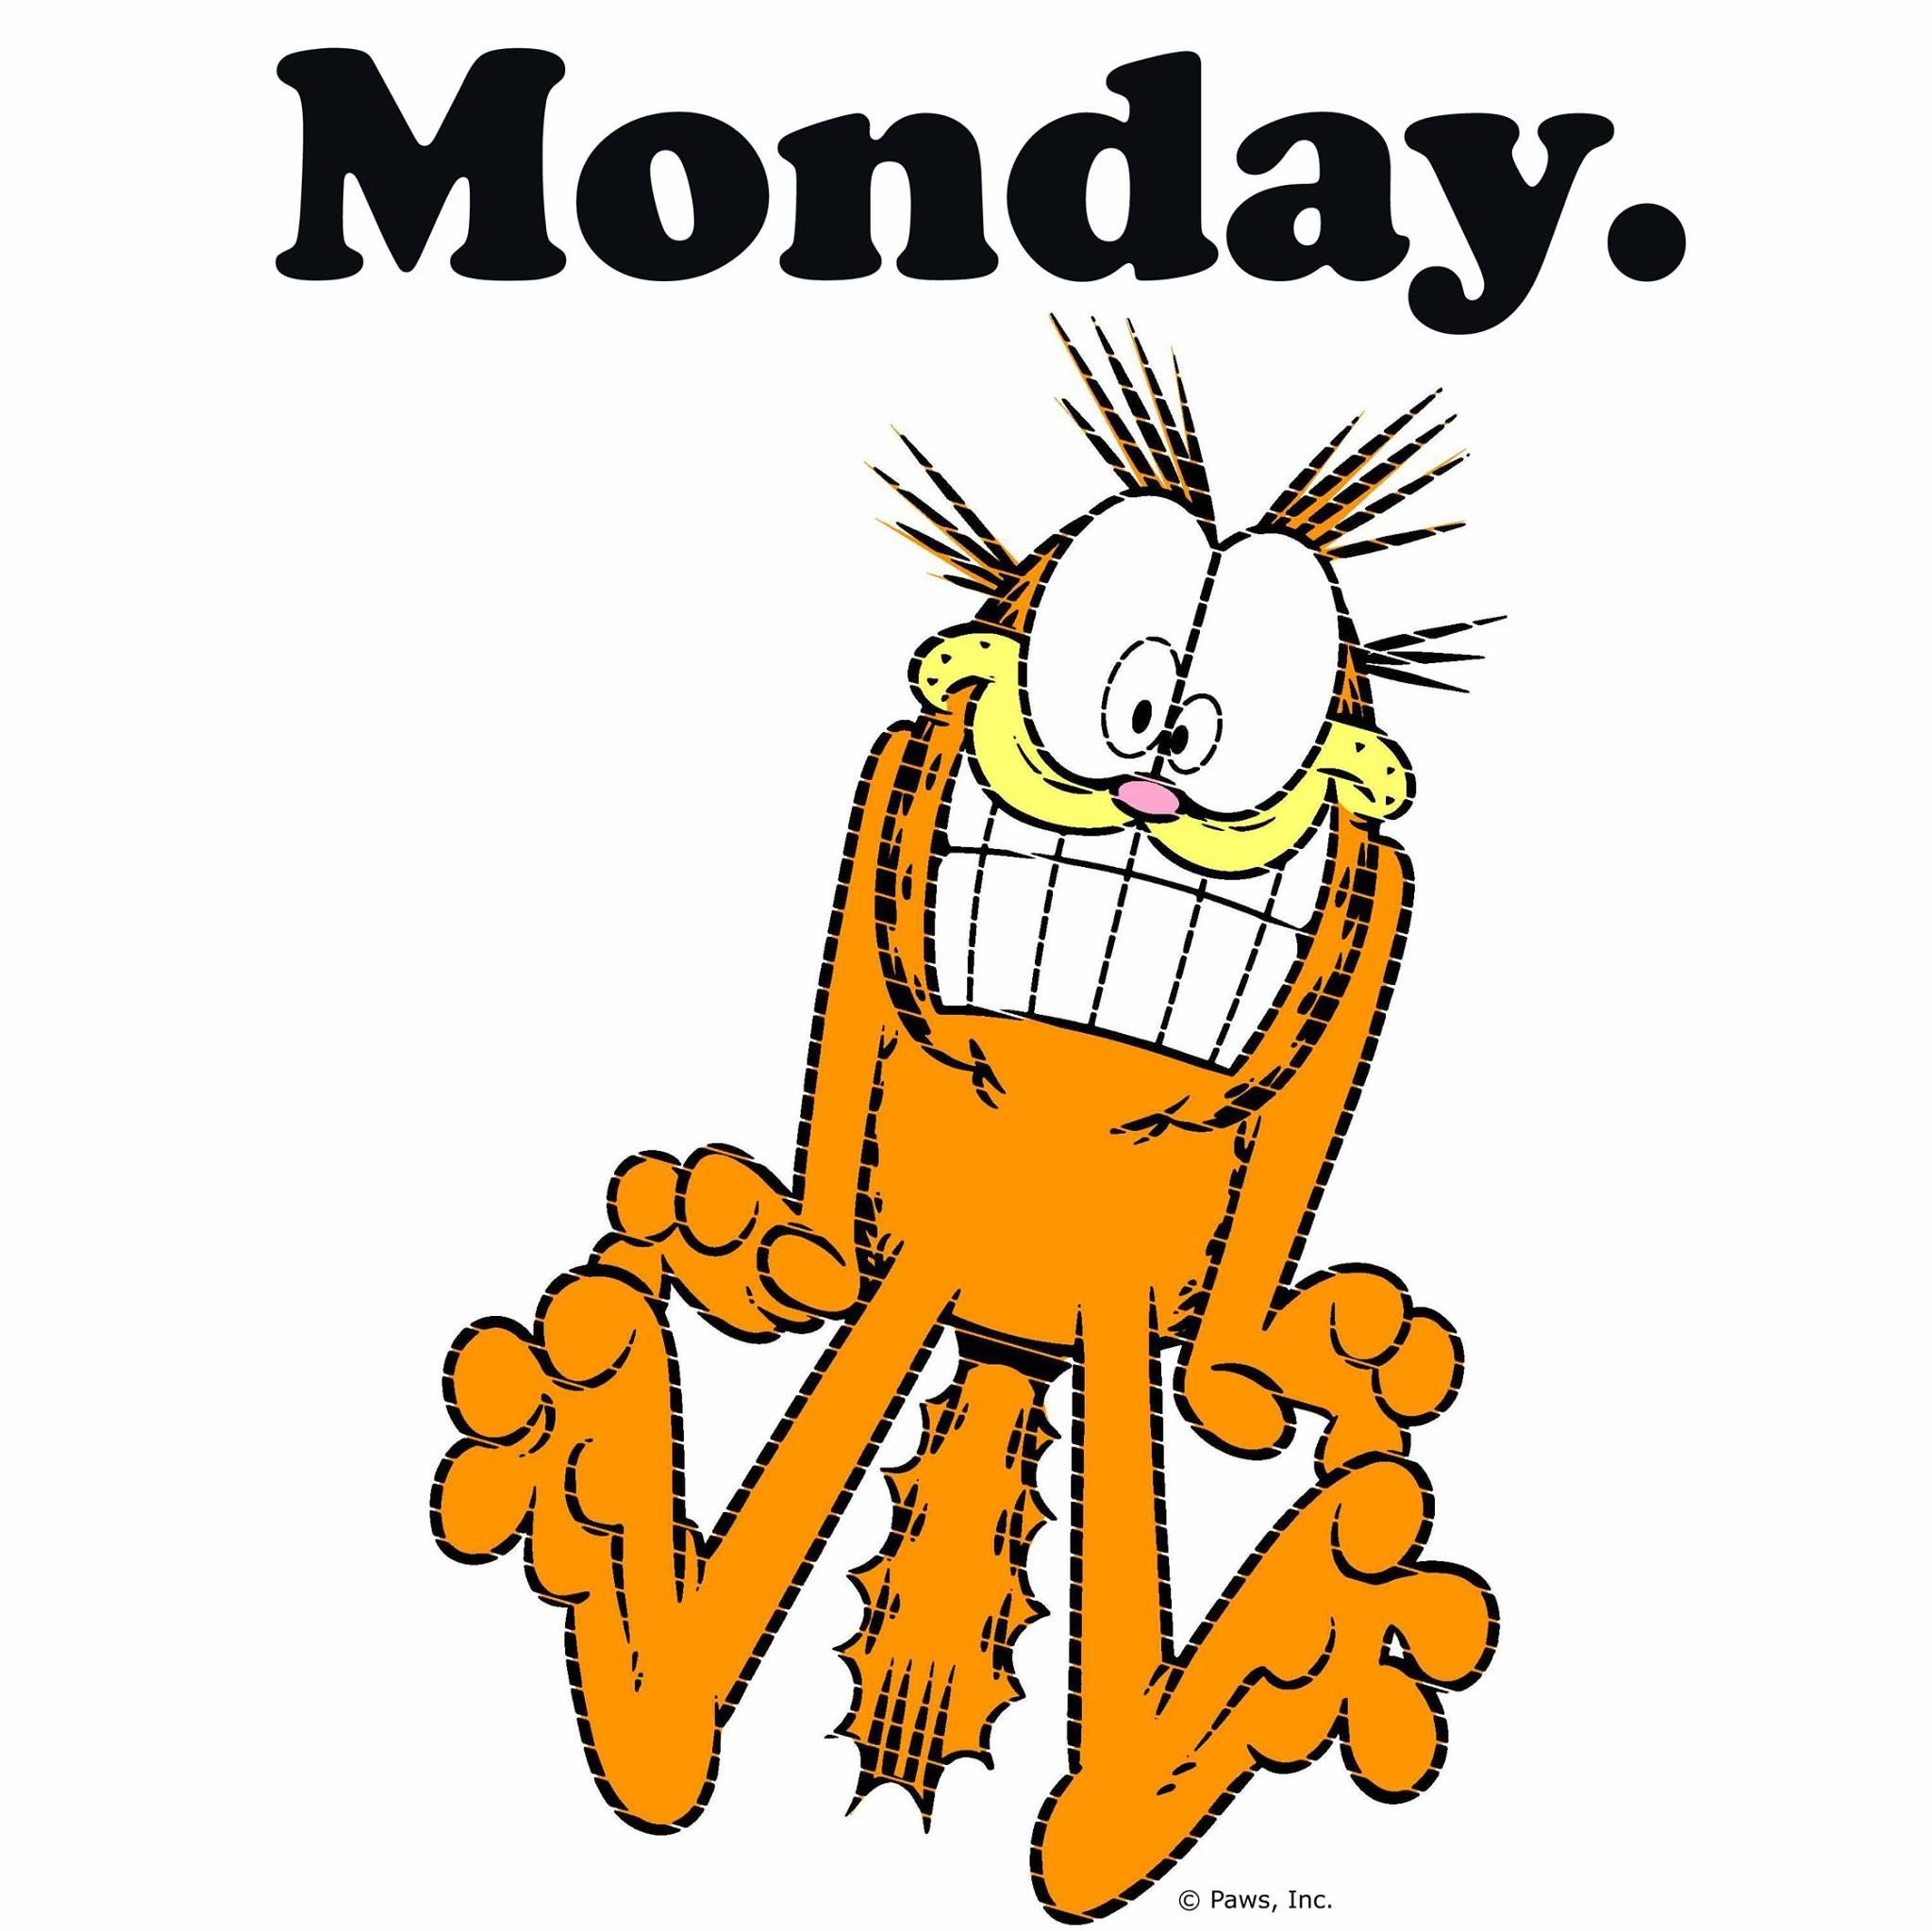 It's Monday! Monday humor, Garfield, Snoopy funny